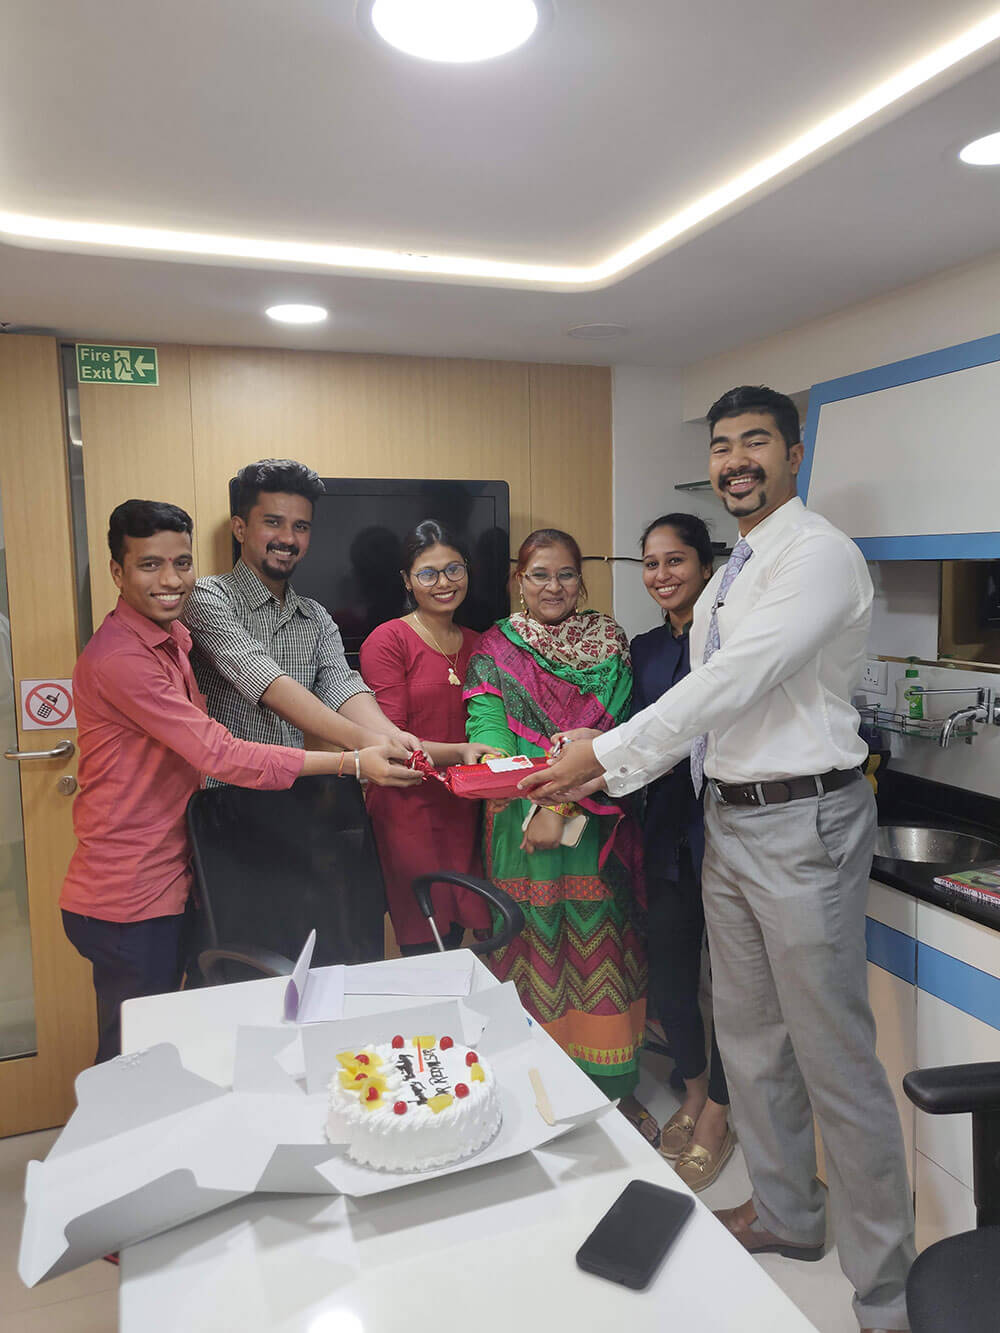 Celebration with our work family - TDMC